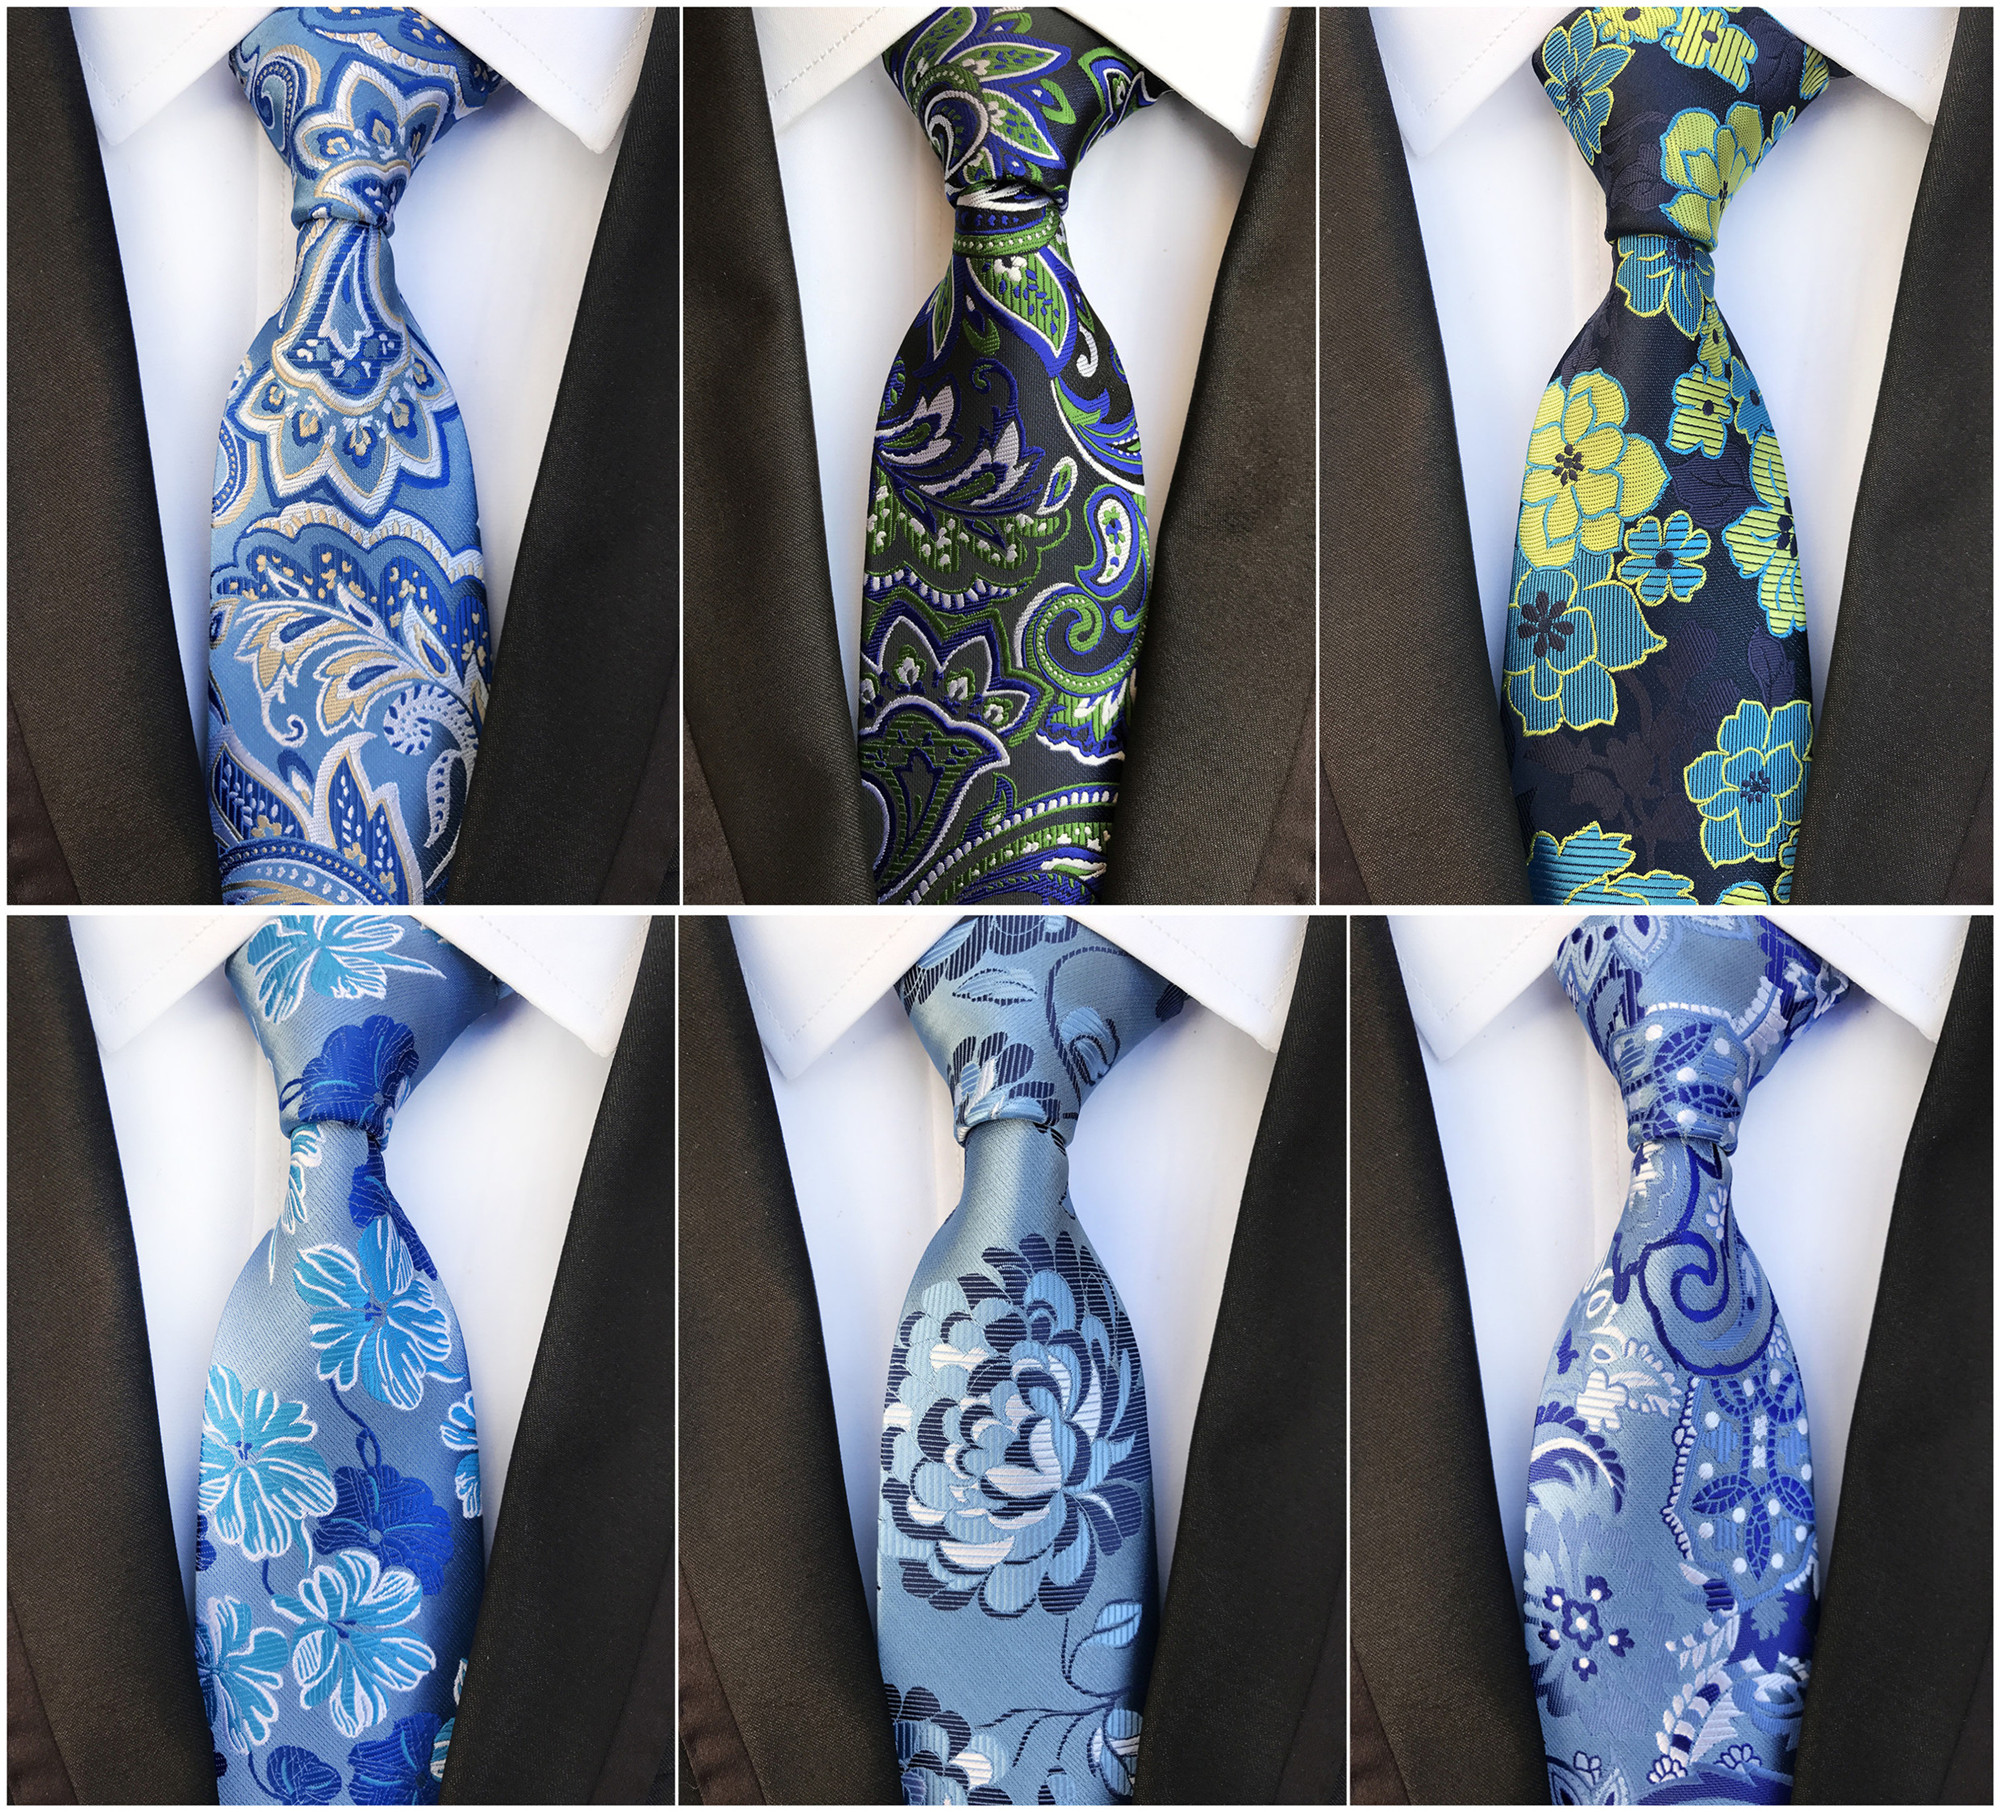 2020 Retro Men's Formalwear Business Accessories Tie Fashion Simple Personality 8cm High Quality Silk Polyester Decorative Tie